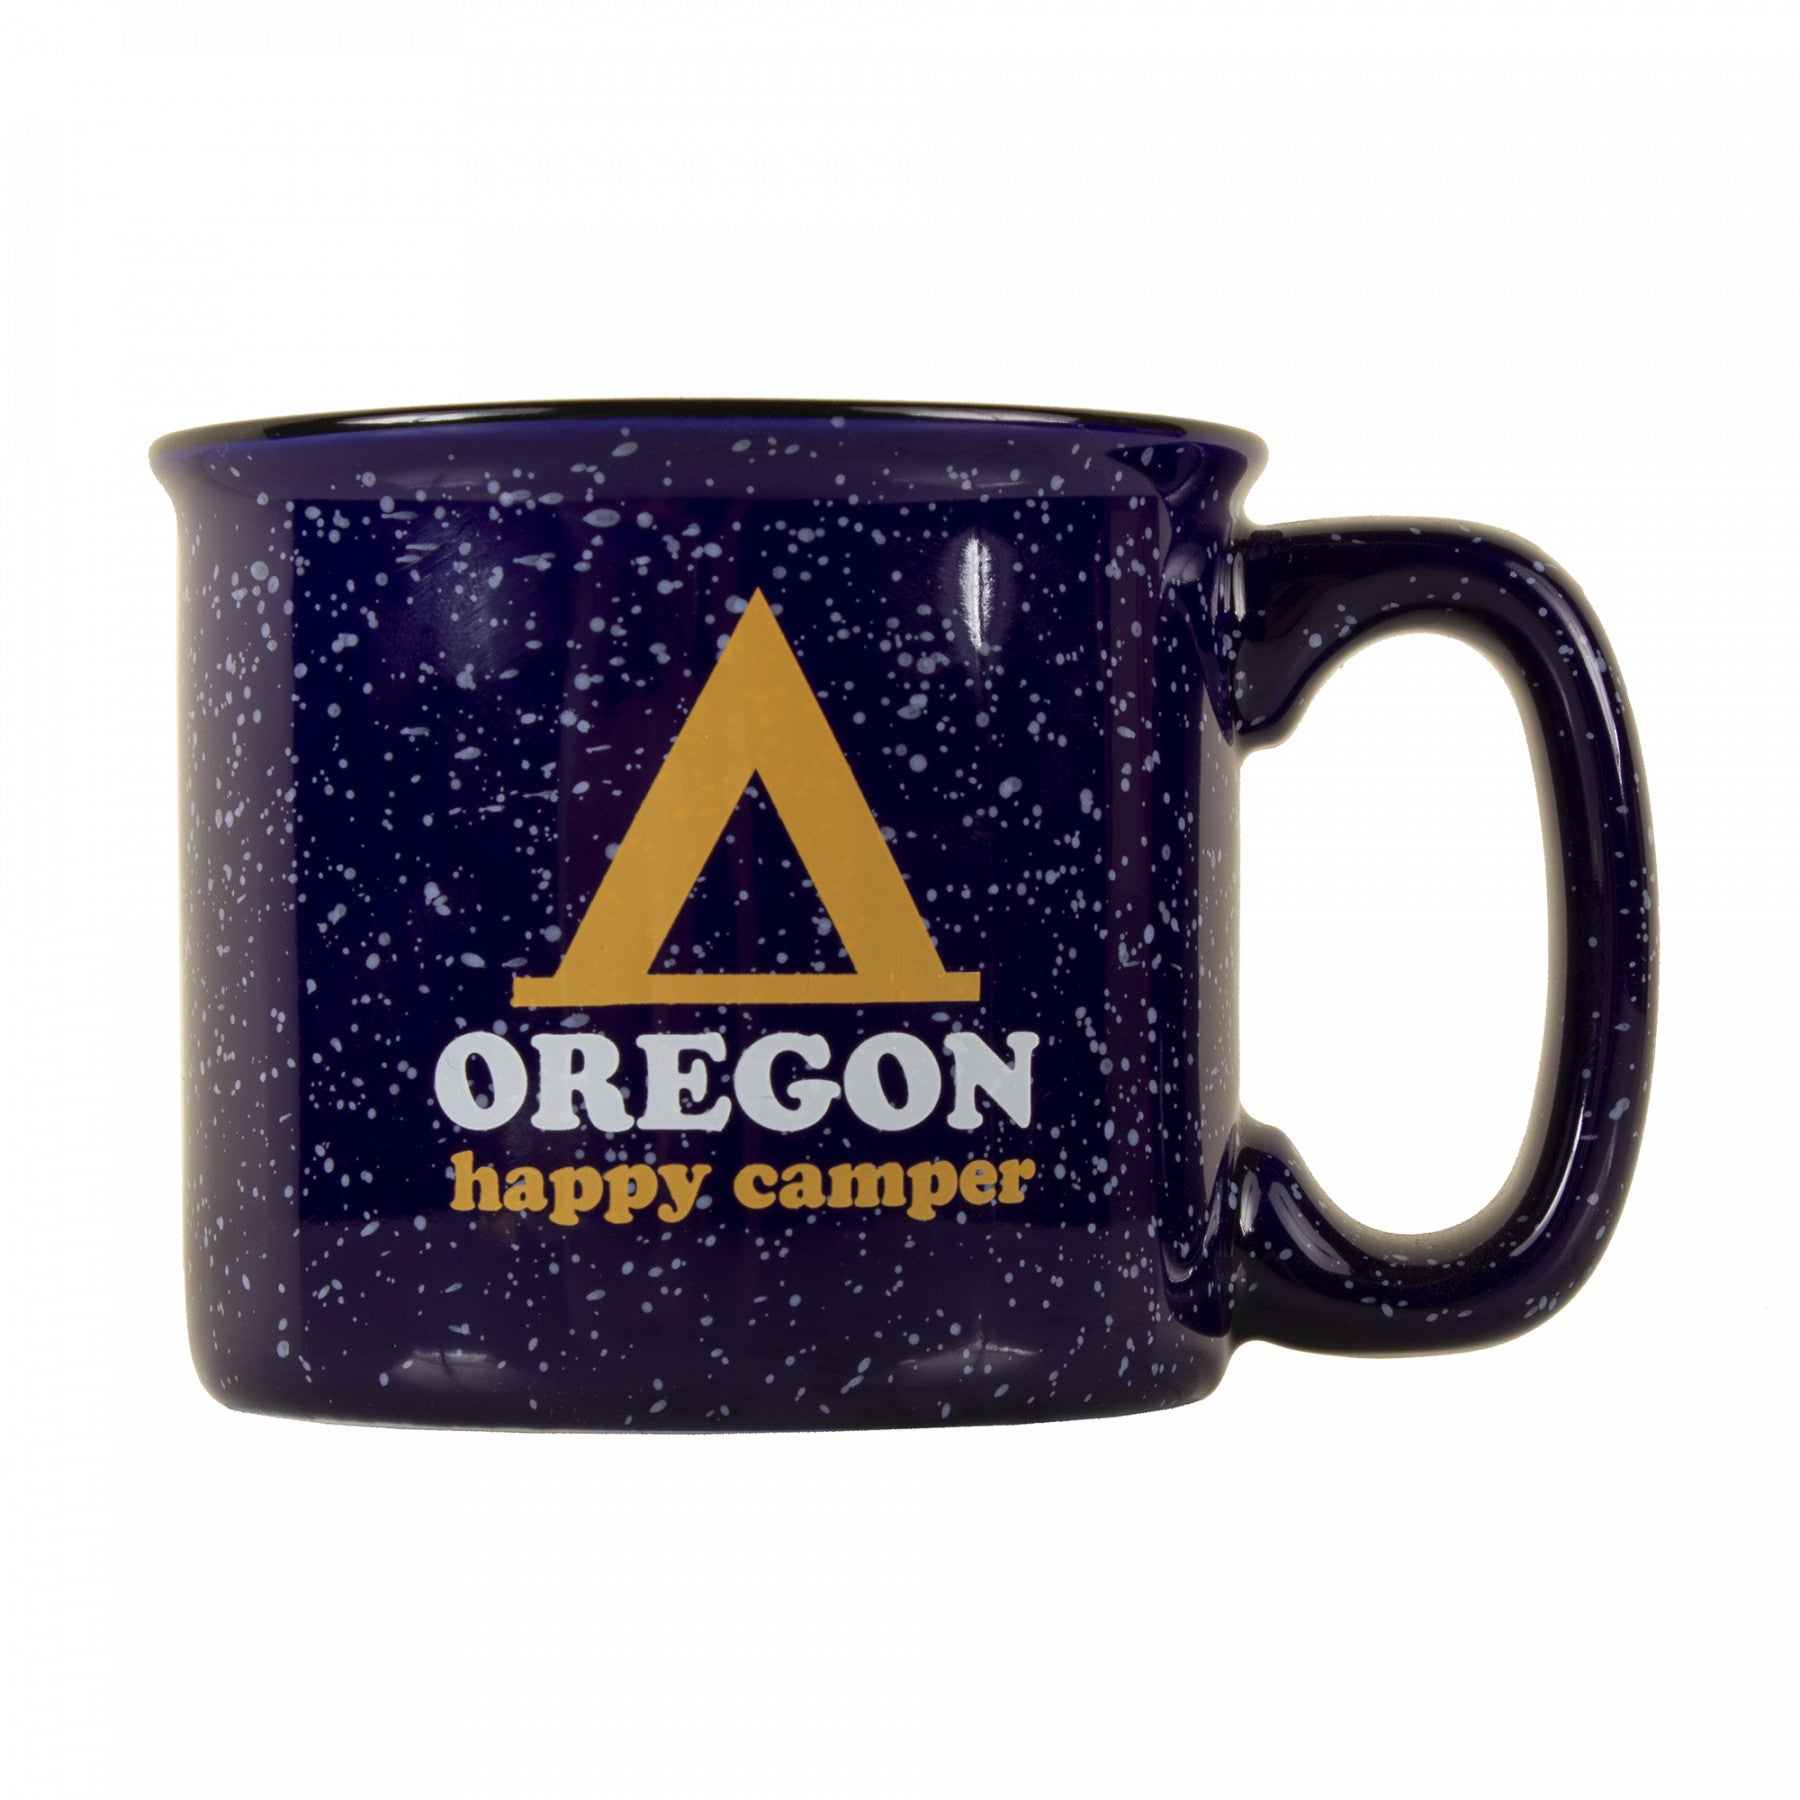 "Large navy speckled mug. ""Oregon Happy Camper"" and the tent logo displayed on the face."